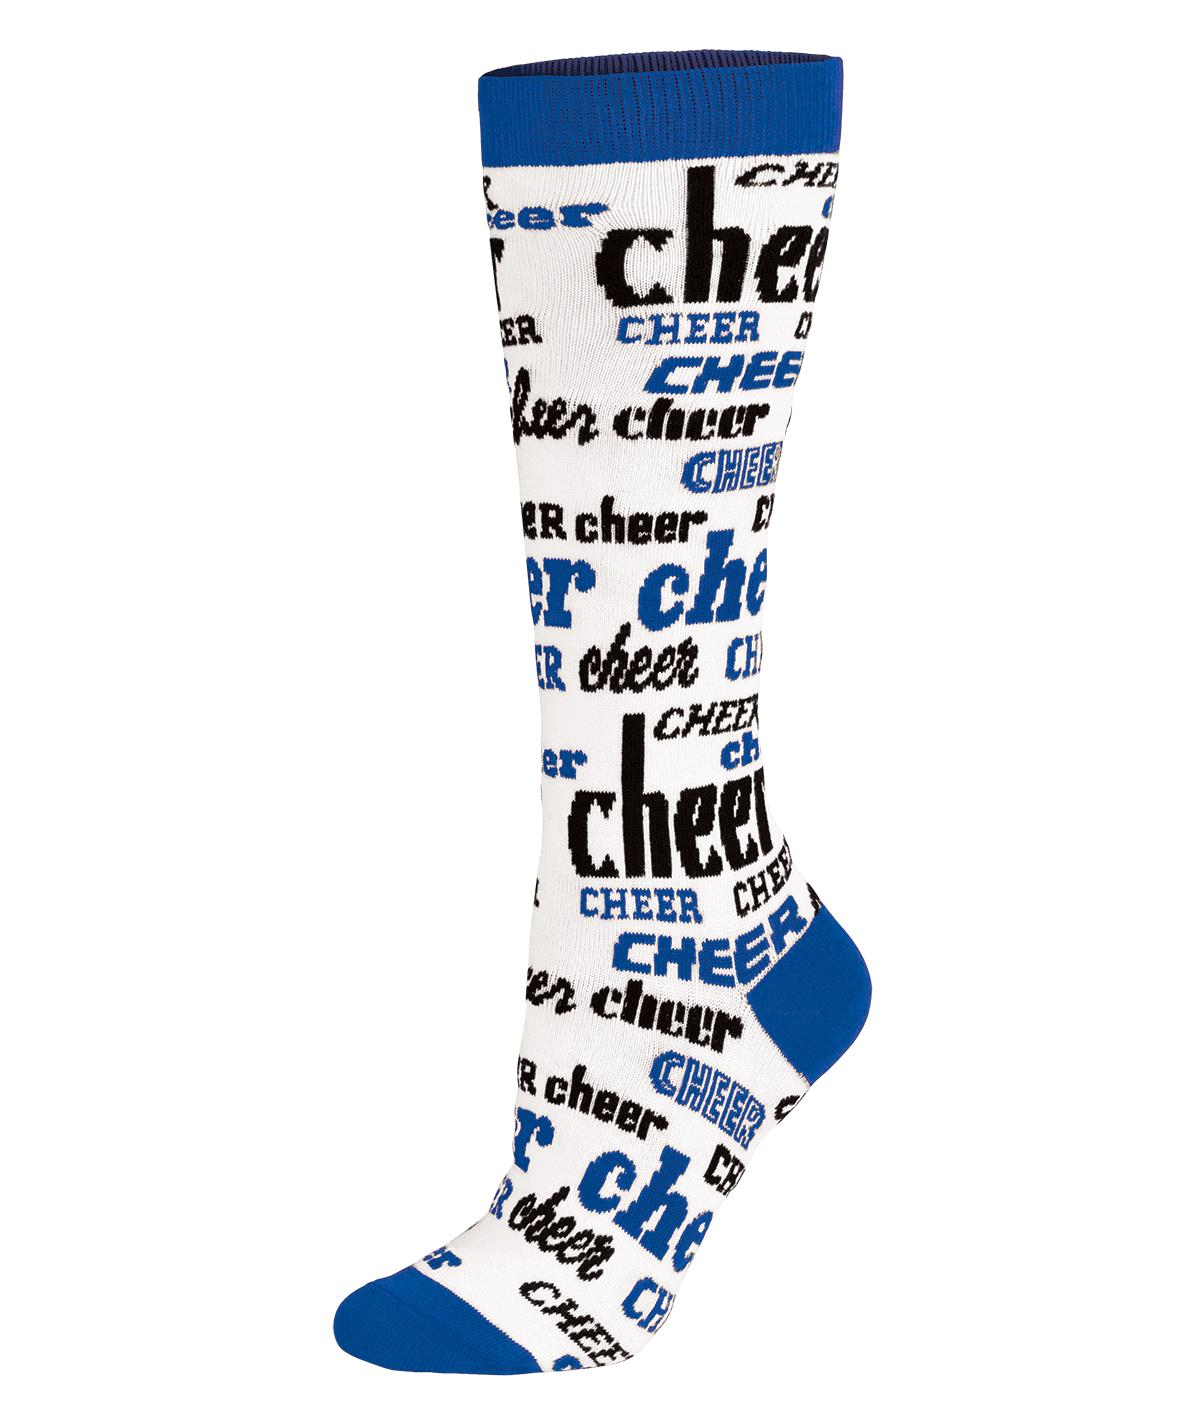 Chassé Knee High Nothing But Cheer Sock